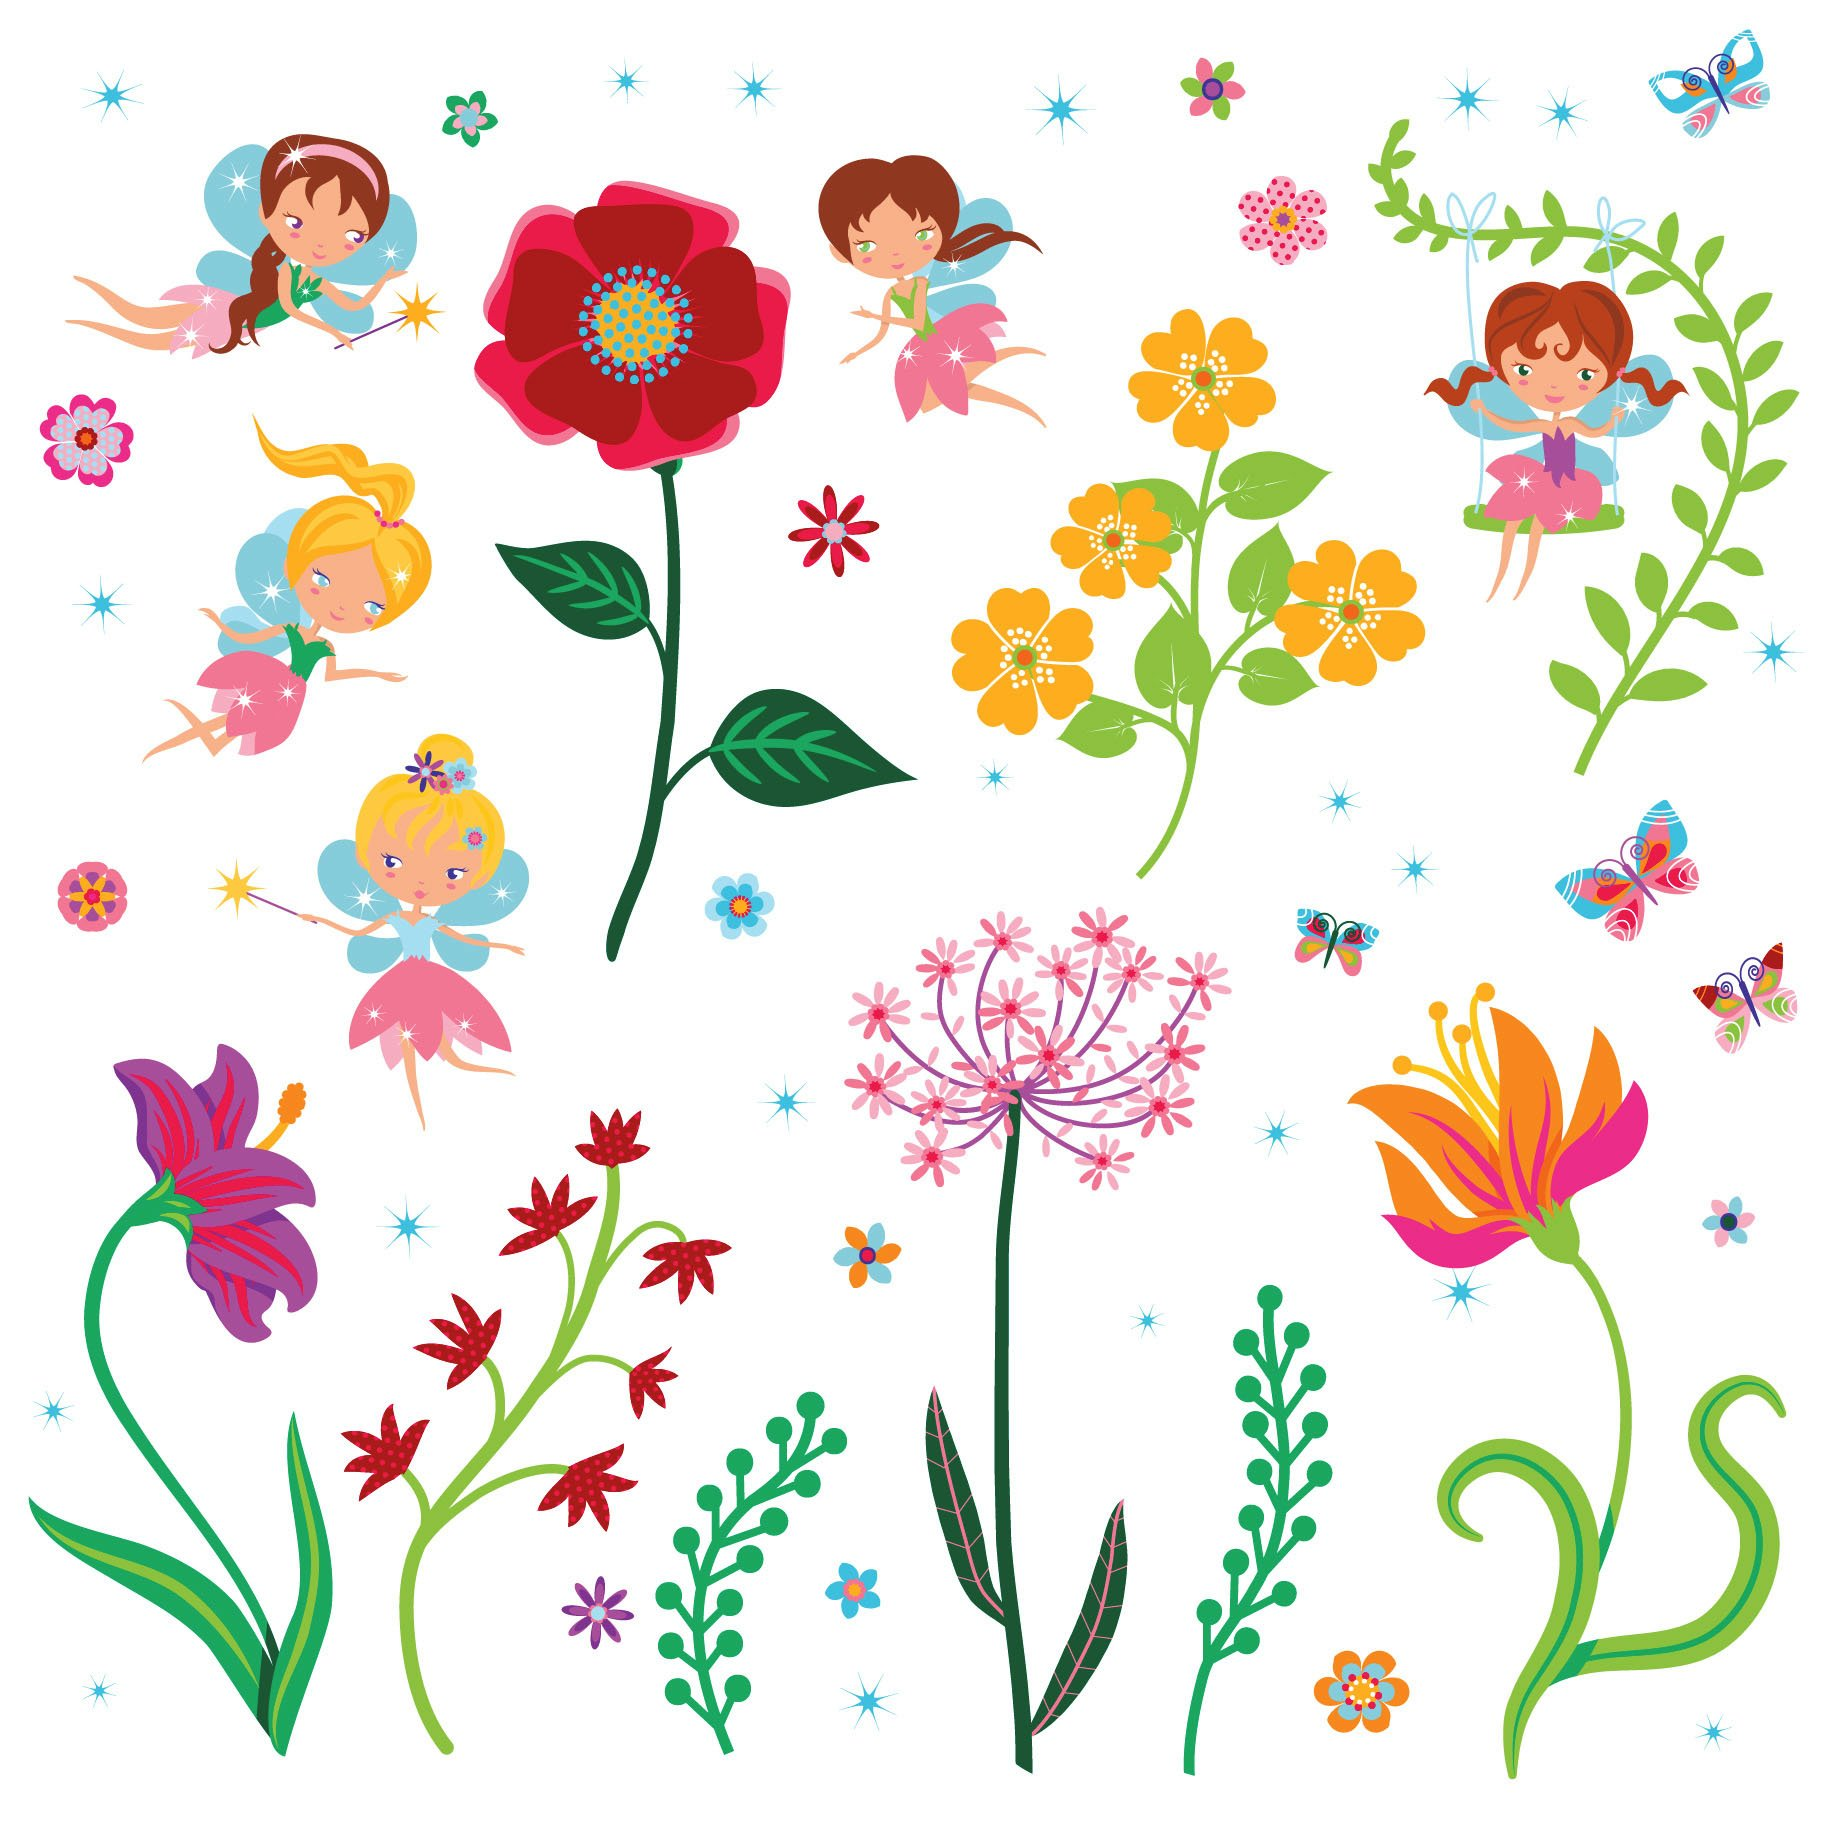 Fairy Flowers Garden Decorative Peel Stick Wall Art Sticker Decals For Kids Room And Nursery